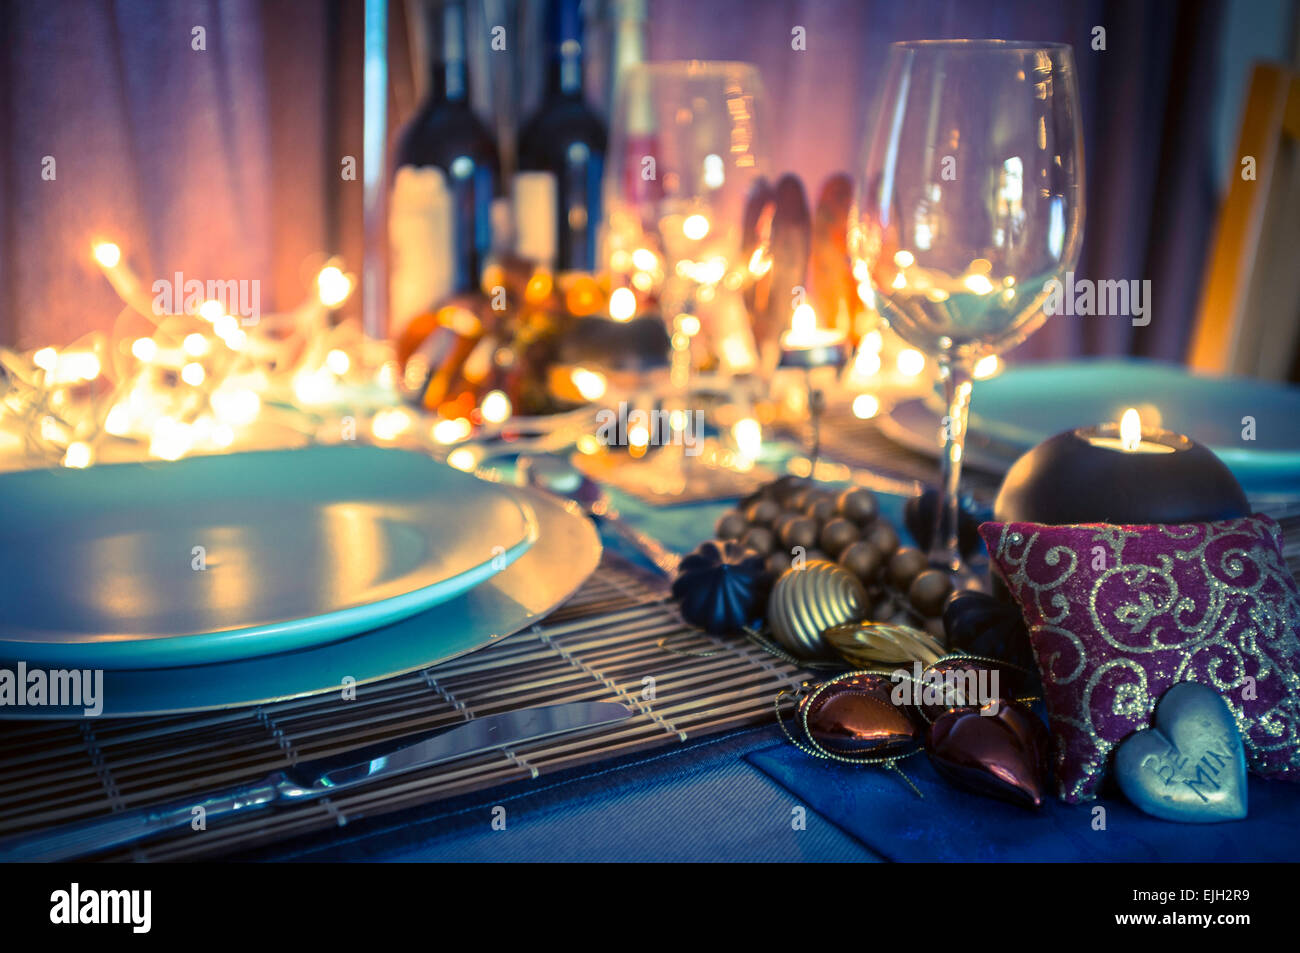 Romantic Decorations table setting and decorations for romantic dinner with candles